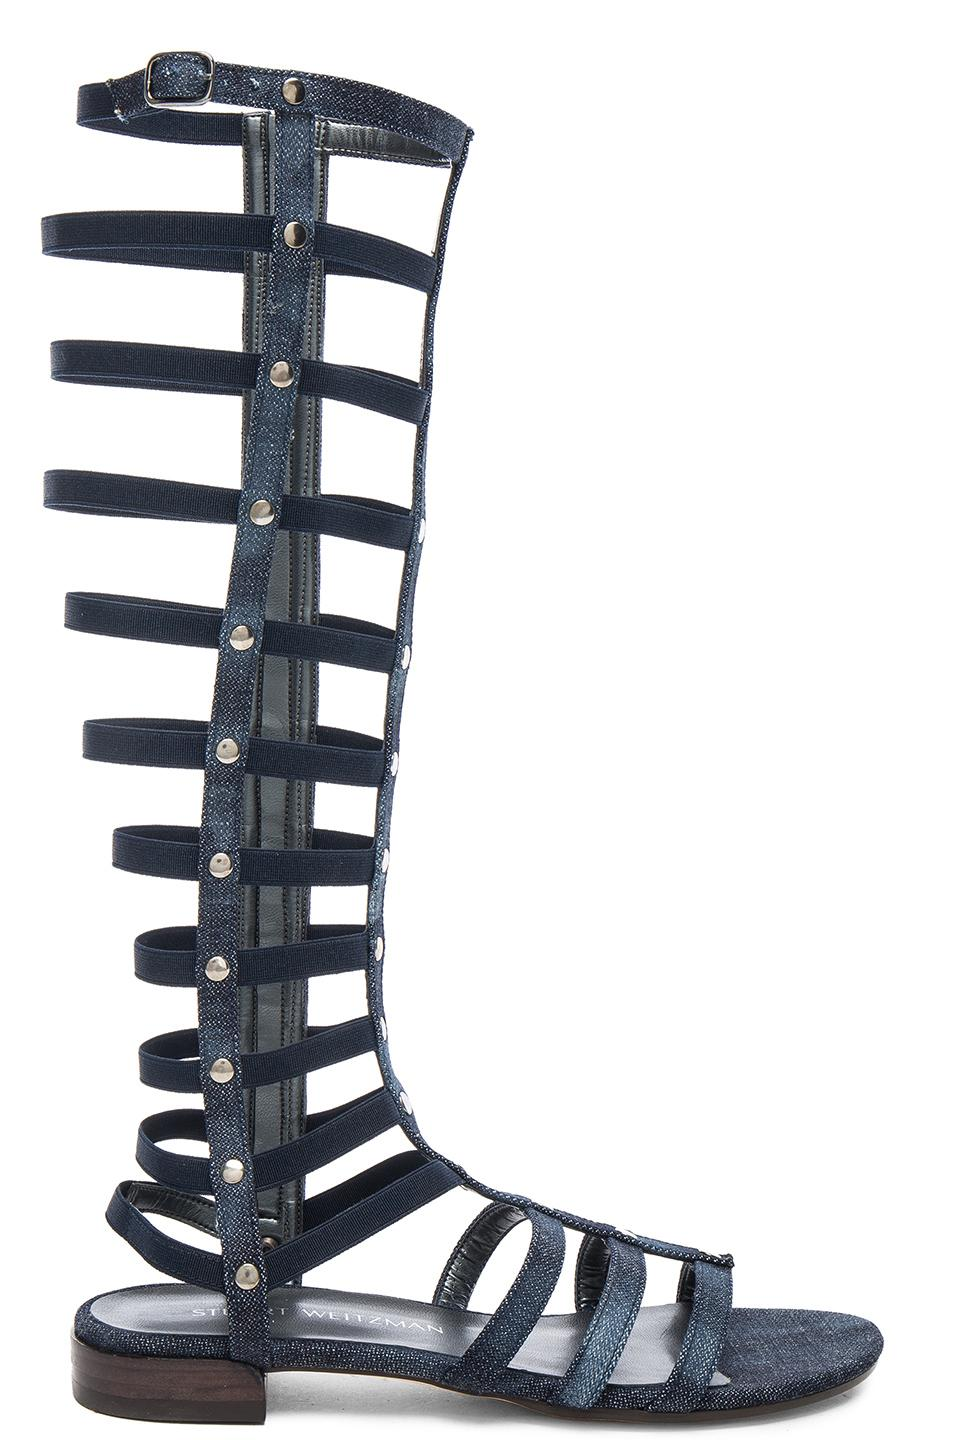 46027691cb5b navy blue gladiator sandals Target - oukas.info